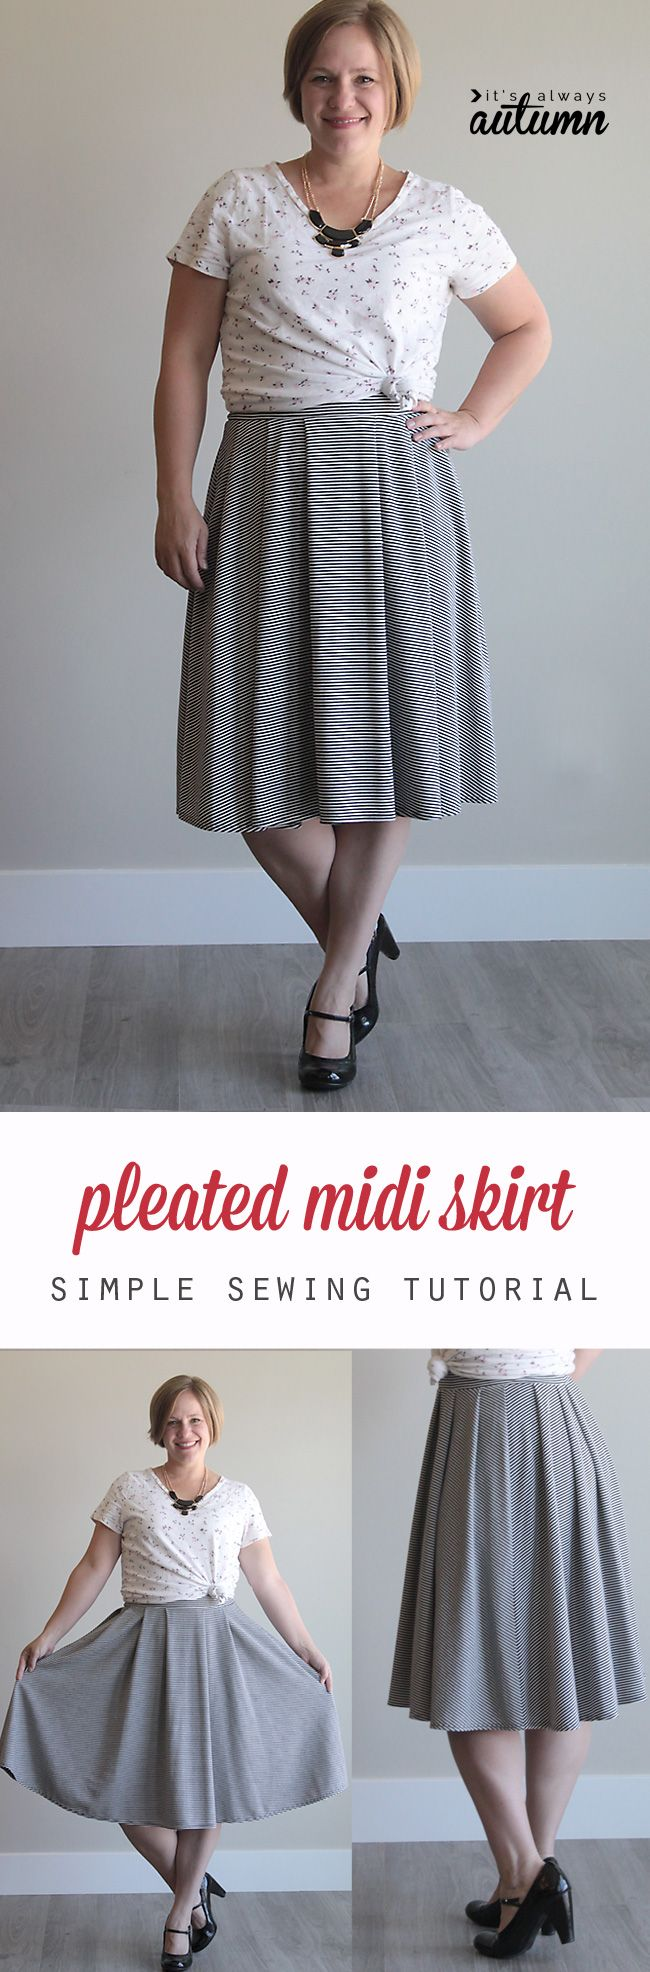 17 best images about skirts tutorials and inspiration